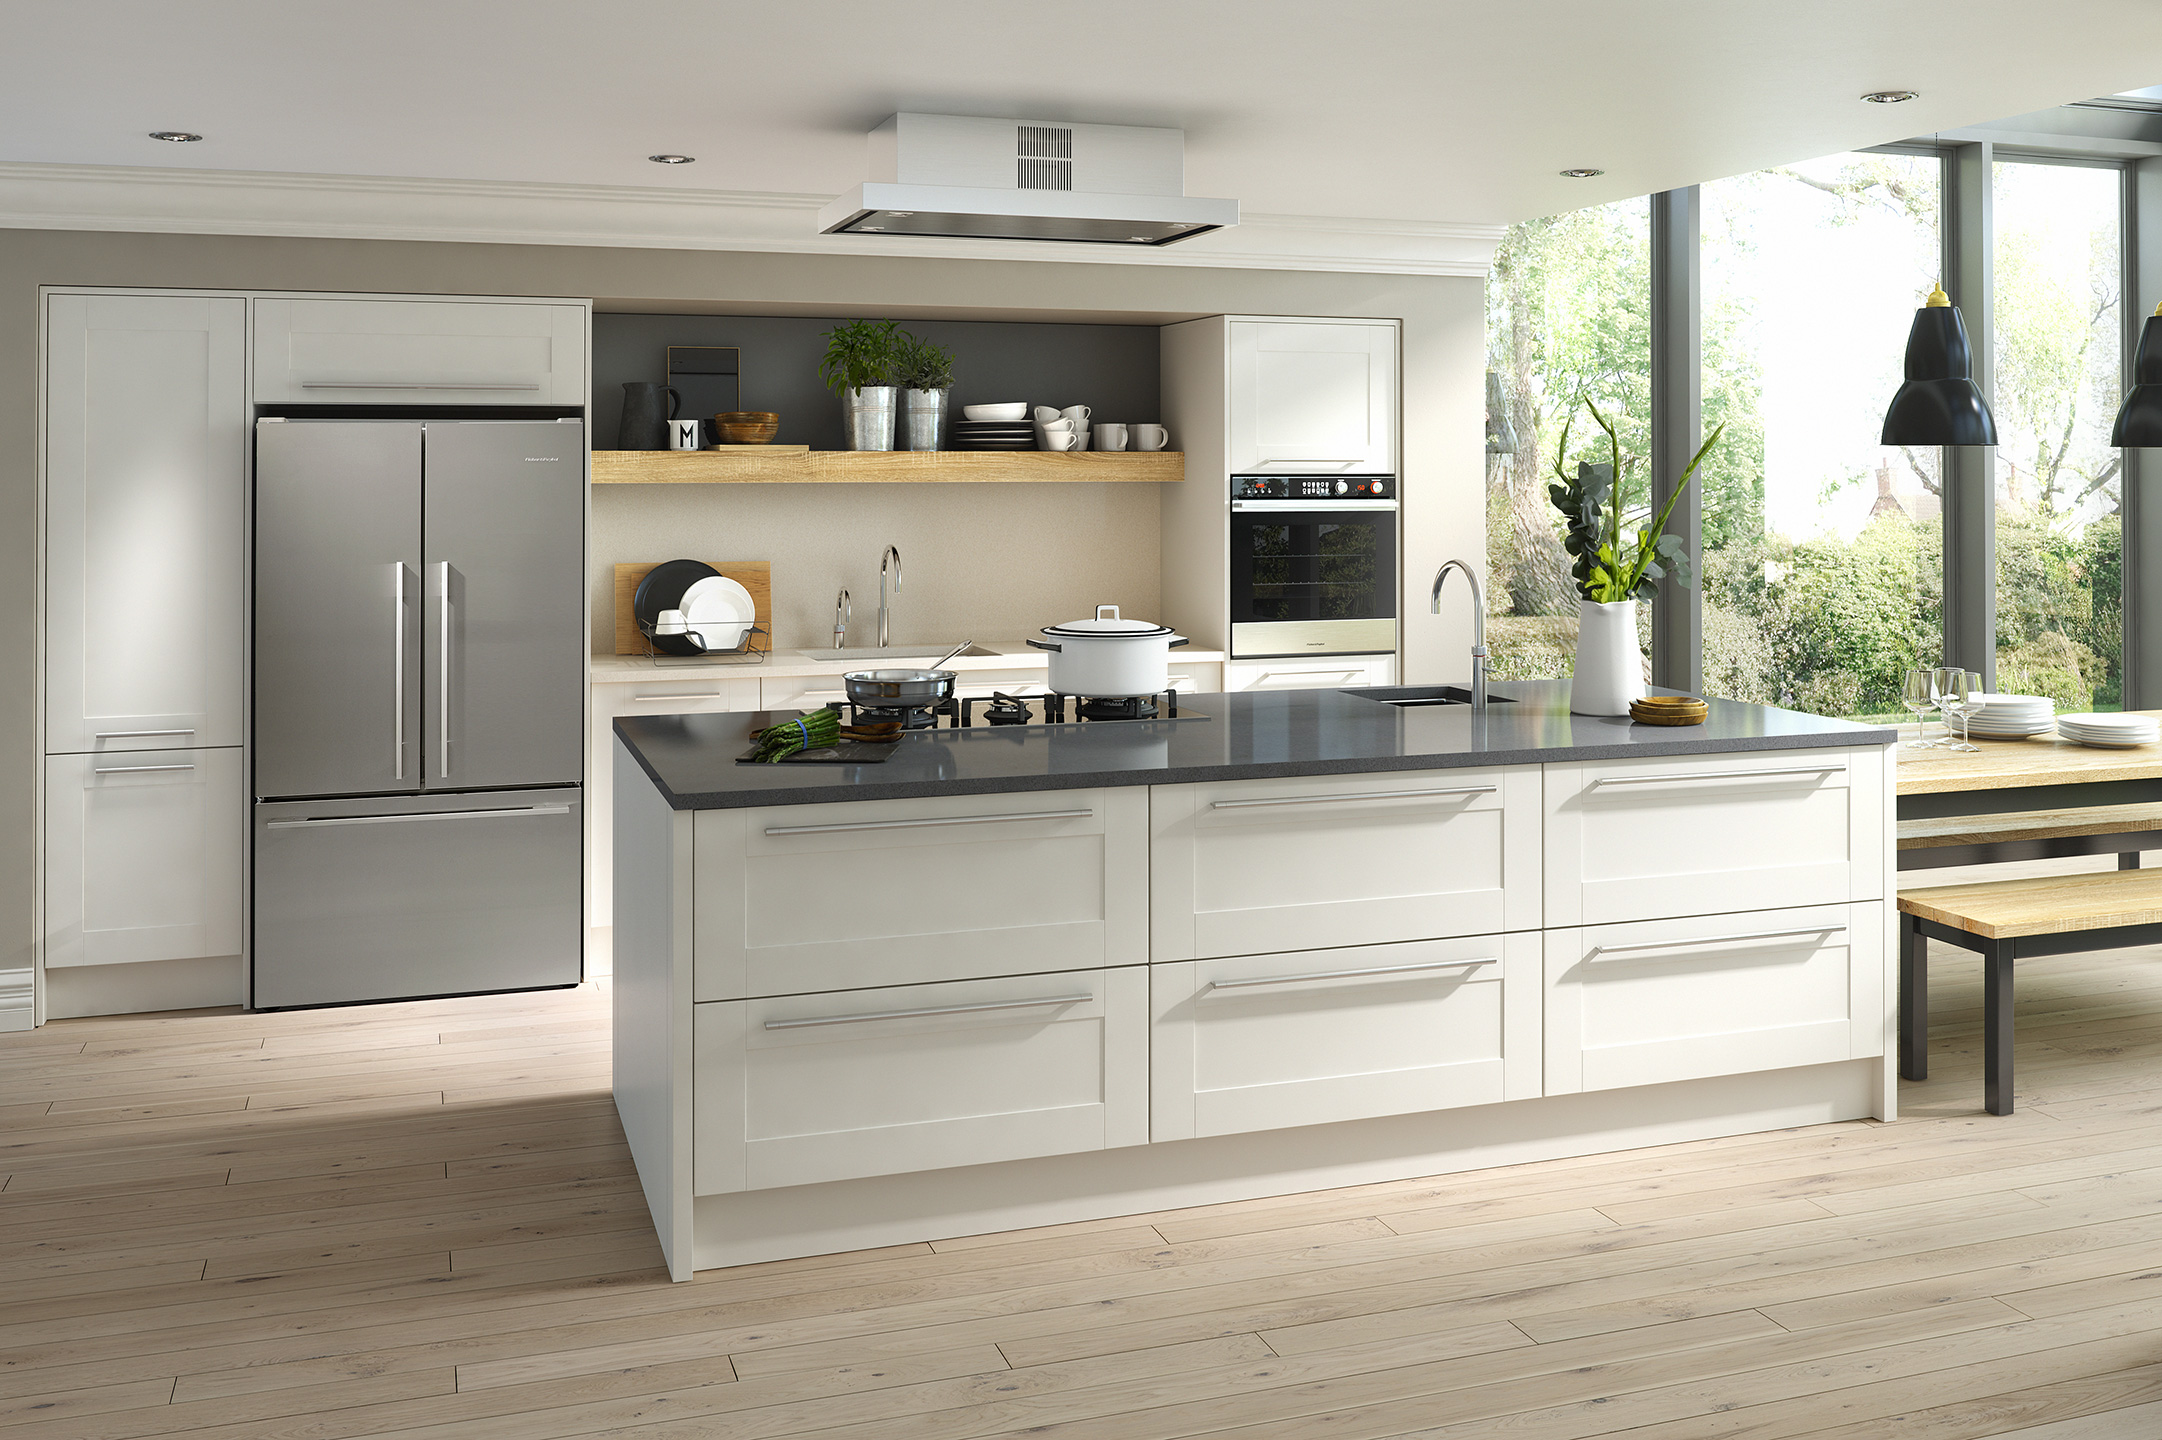 Broadstyle Ivory modern kitchen sussex